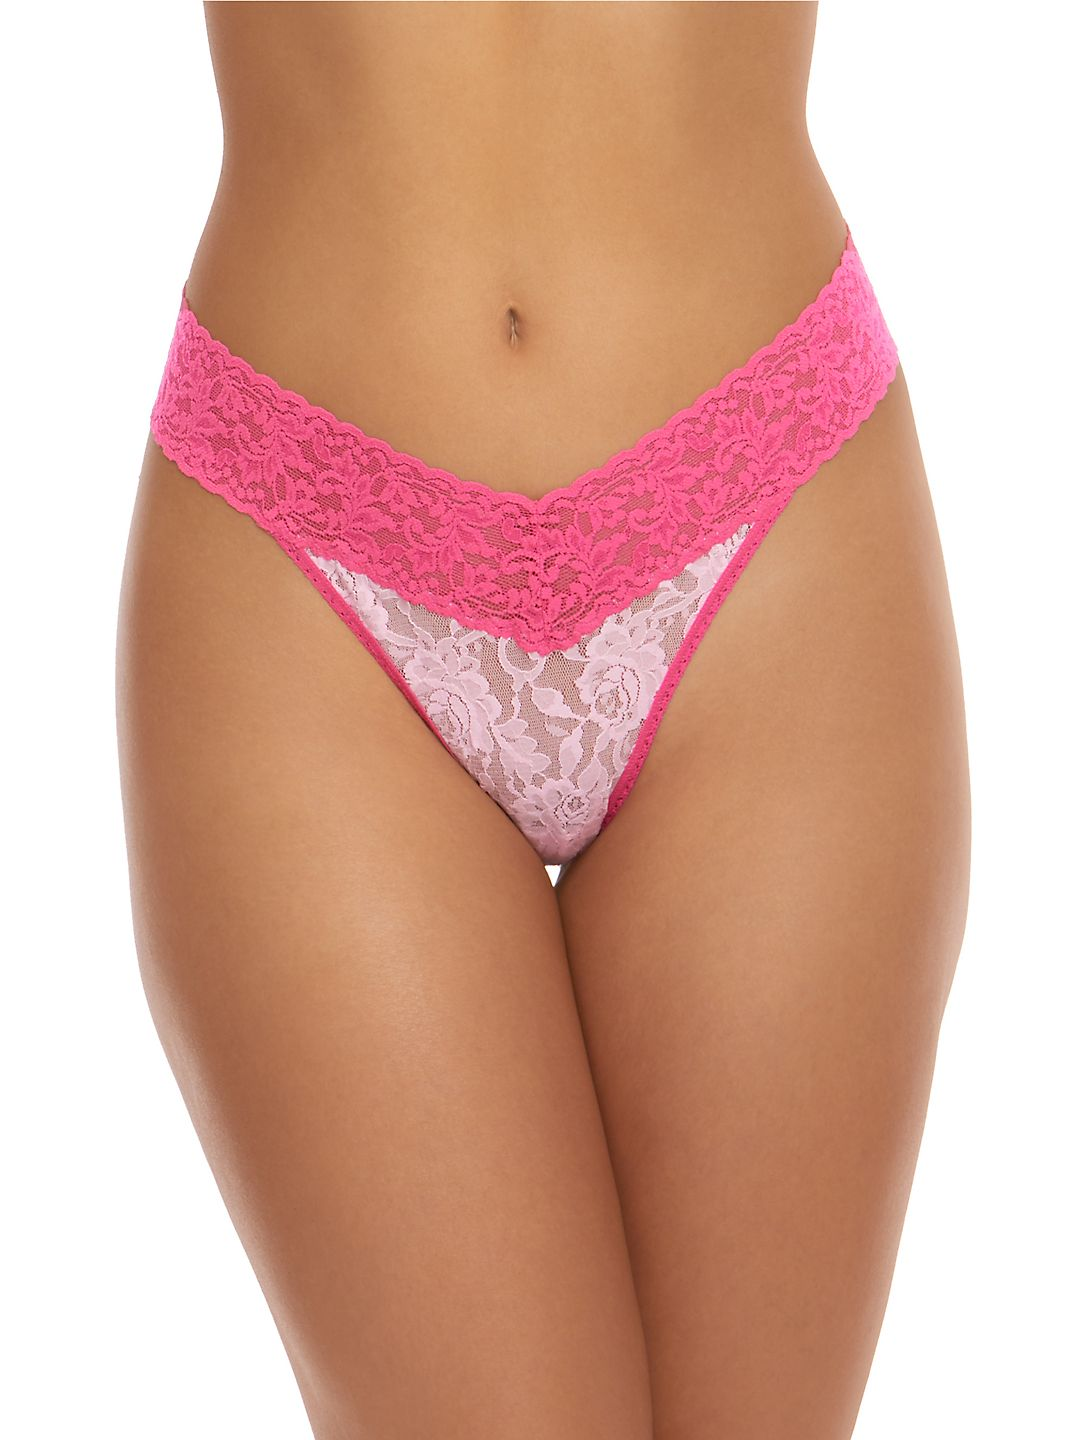 Colorplay Original Rise Thong